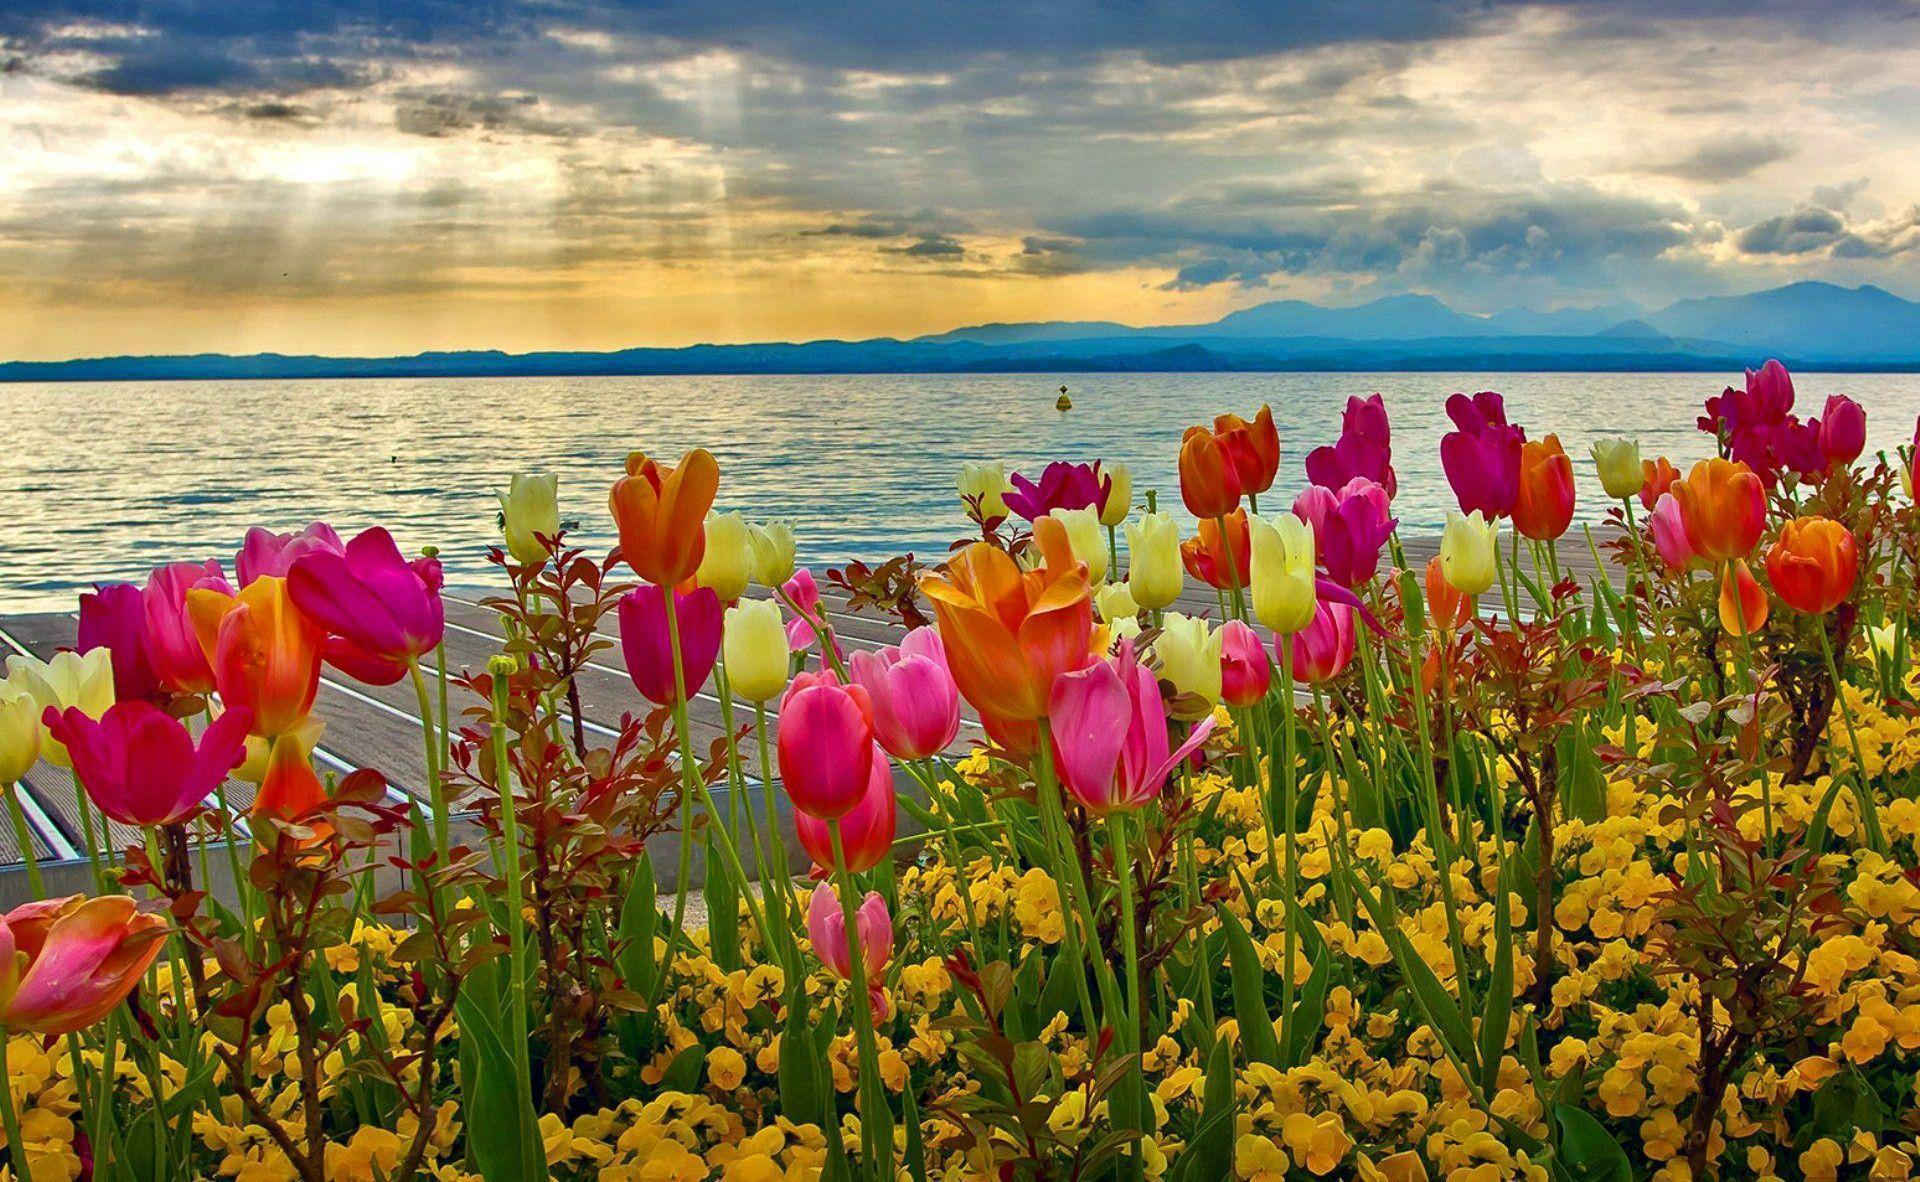 HD Spring Wallpapers For Desktop 1920x1182